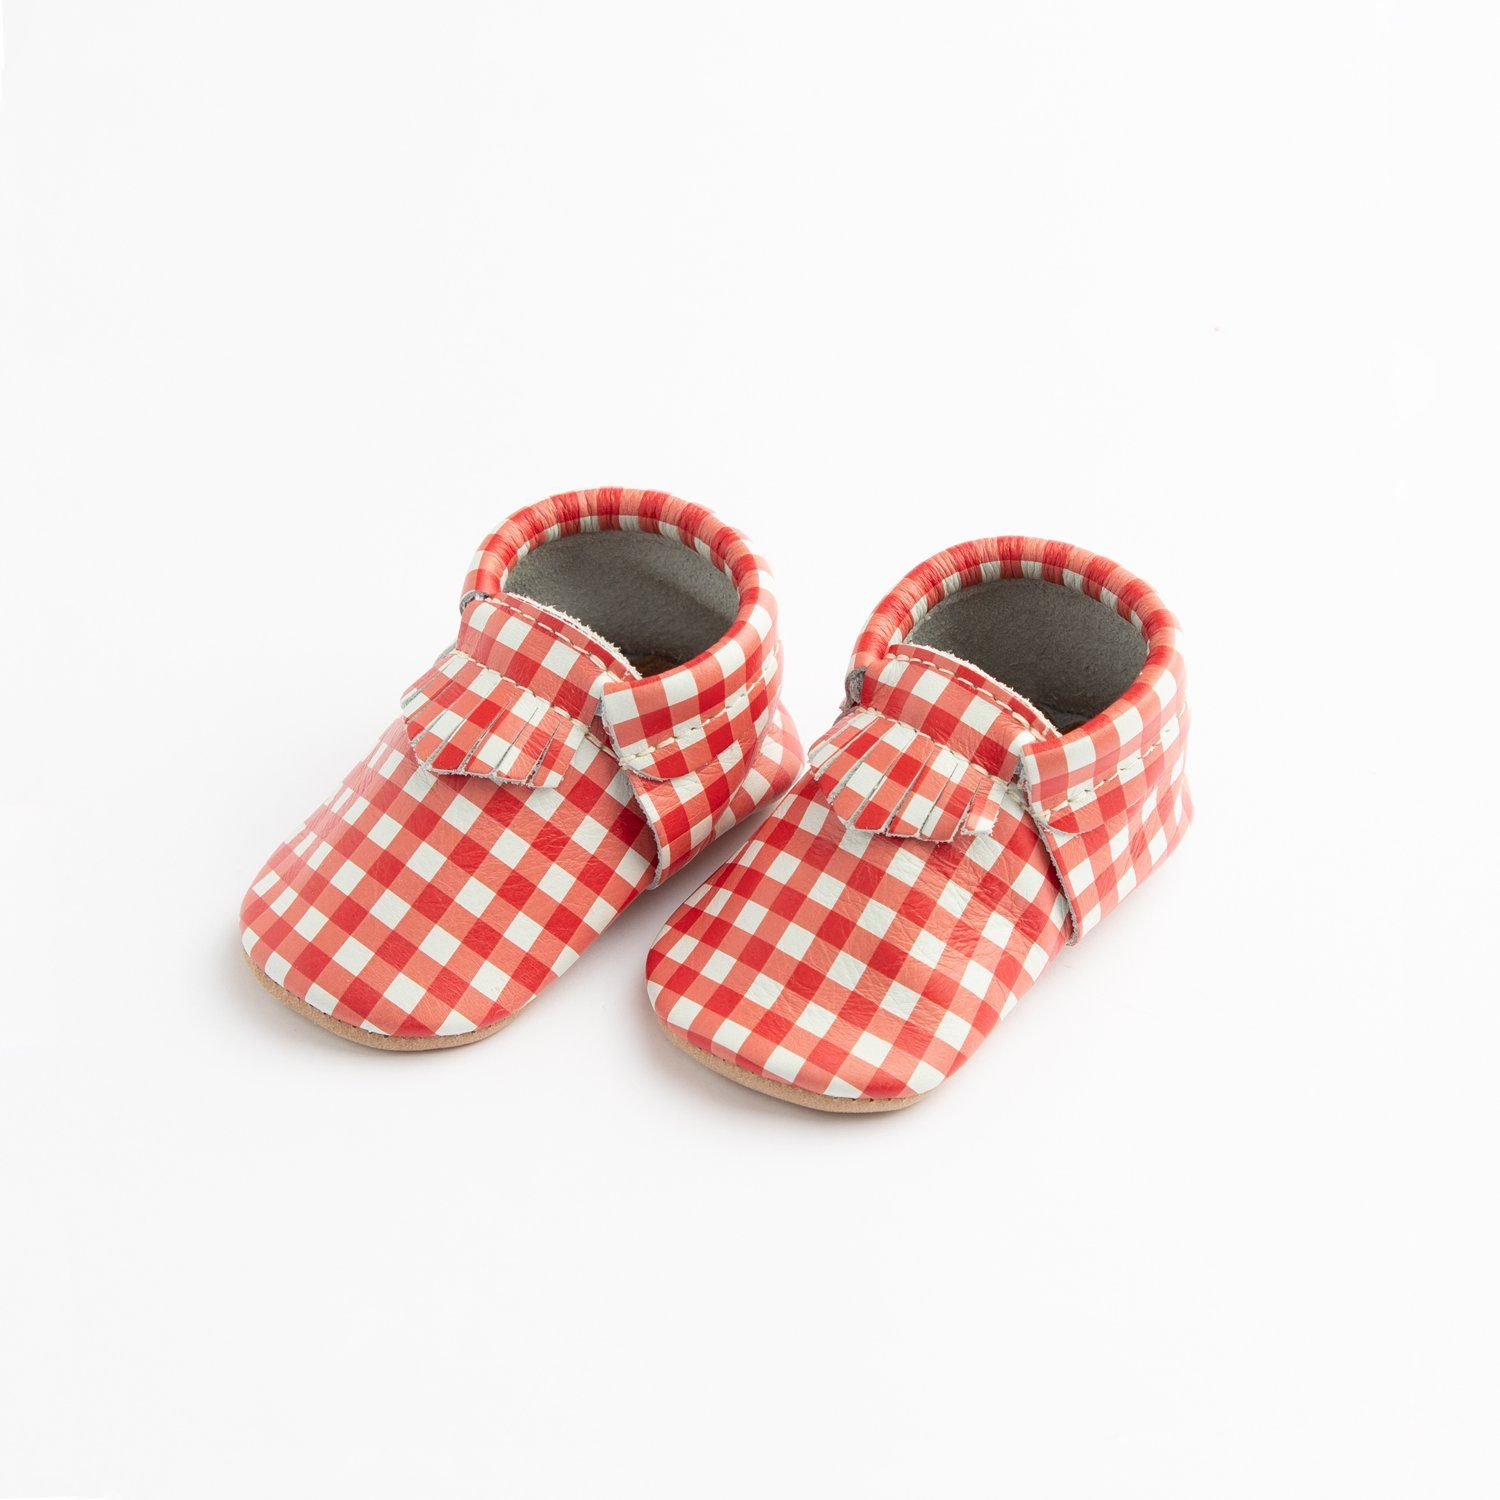 Red Gingham City Mocc Mini Sole Mini Sole City Mocc Mini soles